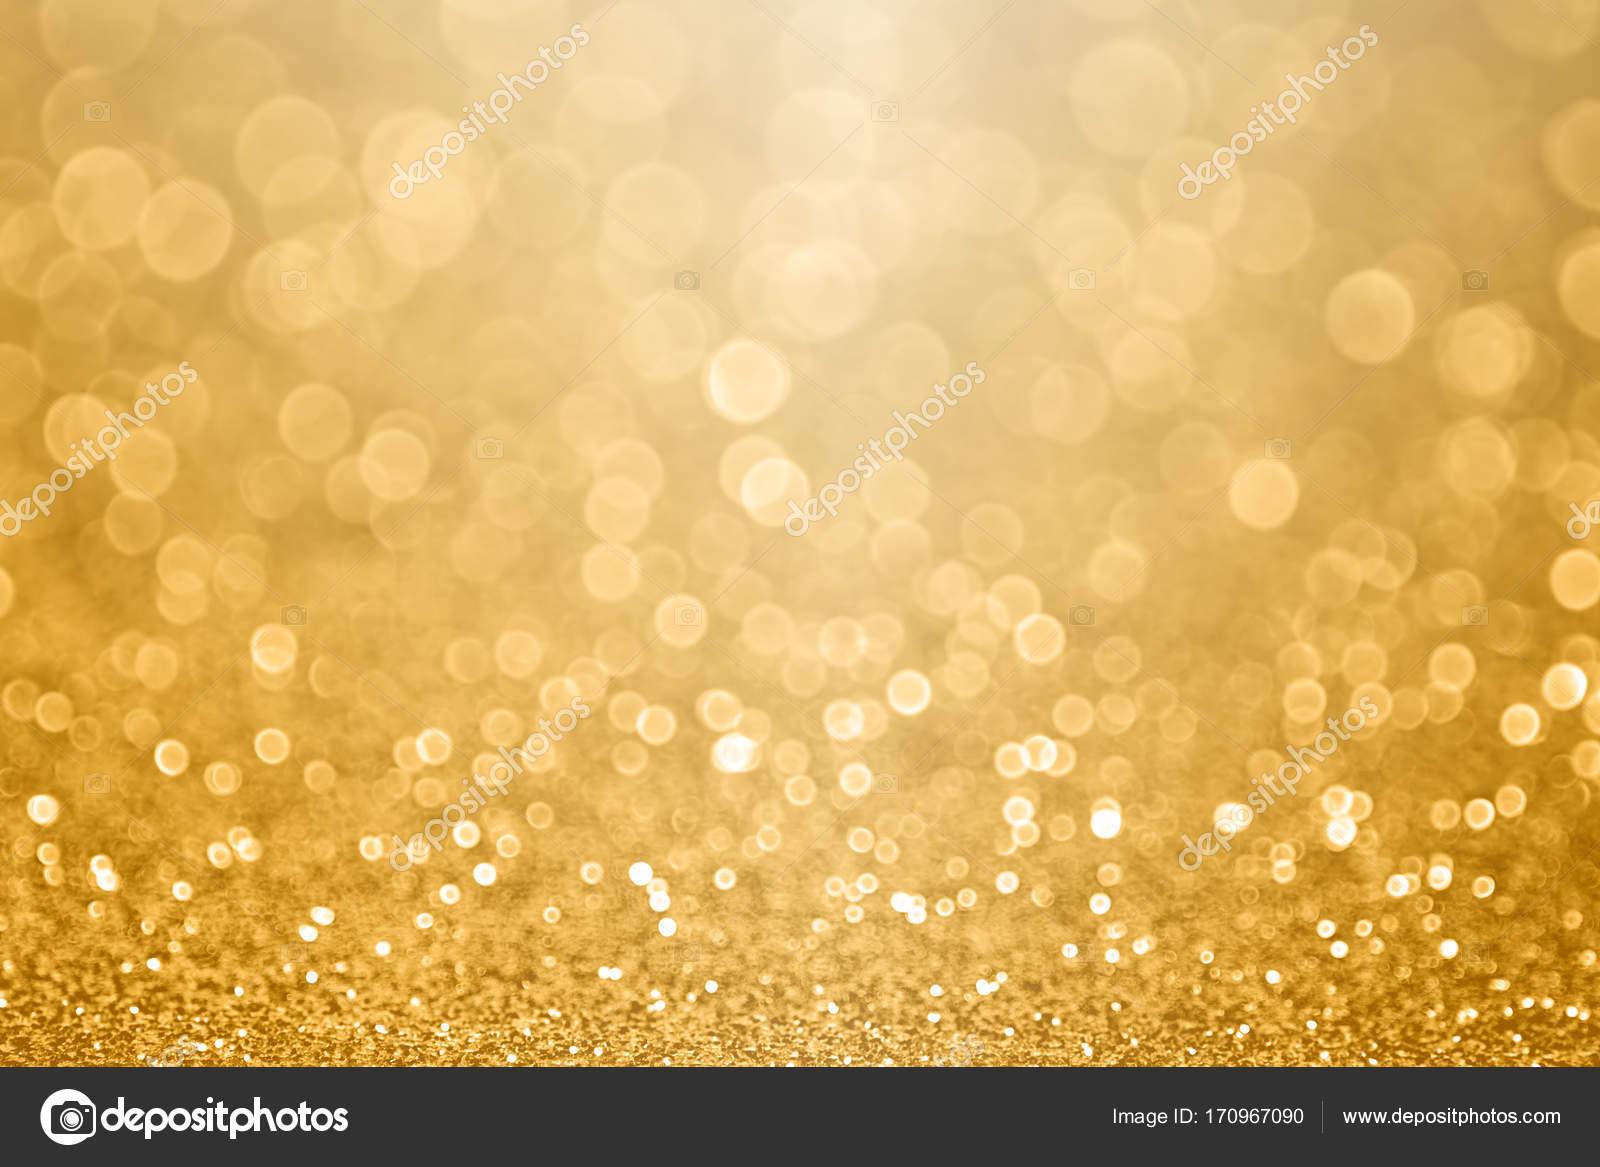 Gold Celebration Background For Anniversary New Year Eve